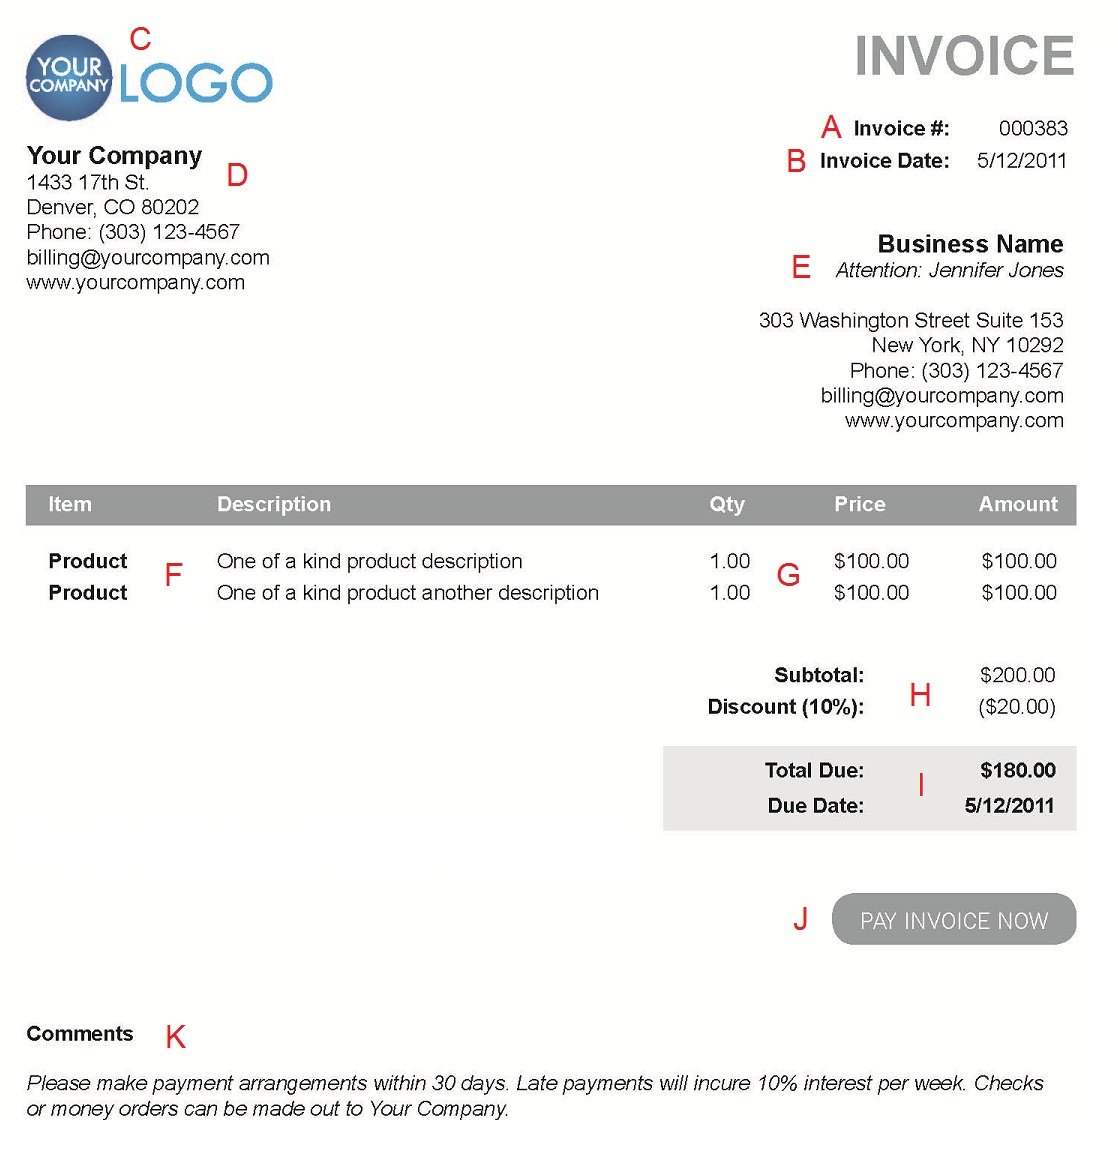 Adoringacklesus  Pleasant The  Different Sections Of An Electronic Payment Invoice With Gorgeous A  With Astounding Requirements For An Invoice Also Parforma Invoice In Addition Cadillac Invoice Pricing And Templates For Billing Invoice As Well As Over Invoicing Additionally Auto Repair Invoice Program From Paysimplecom With Adoringacklesus  Gorgeous The  Different Sections Of An Electronic Payment Invoice With Astounding A  And Pleasant Requirements For An Invoice Also Parforma Invoice In Addition Cadillac Invoice Pricing From Paysimplecom